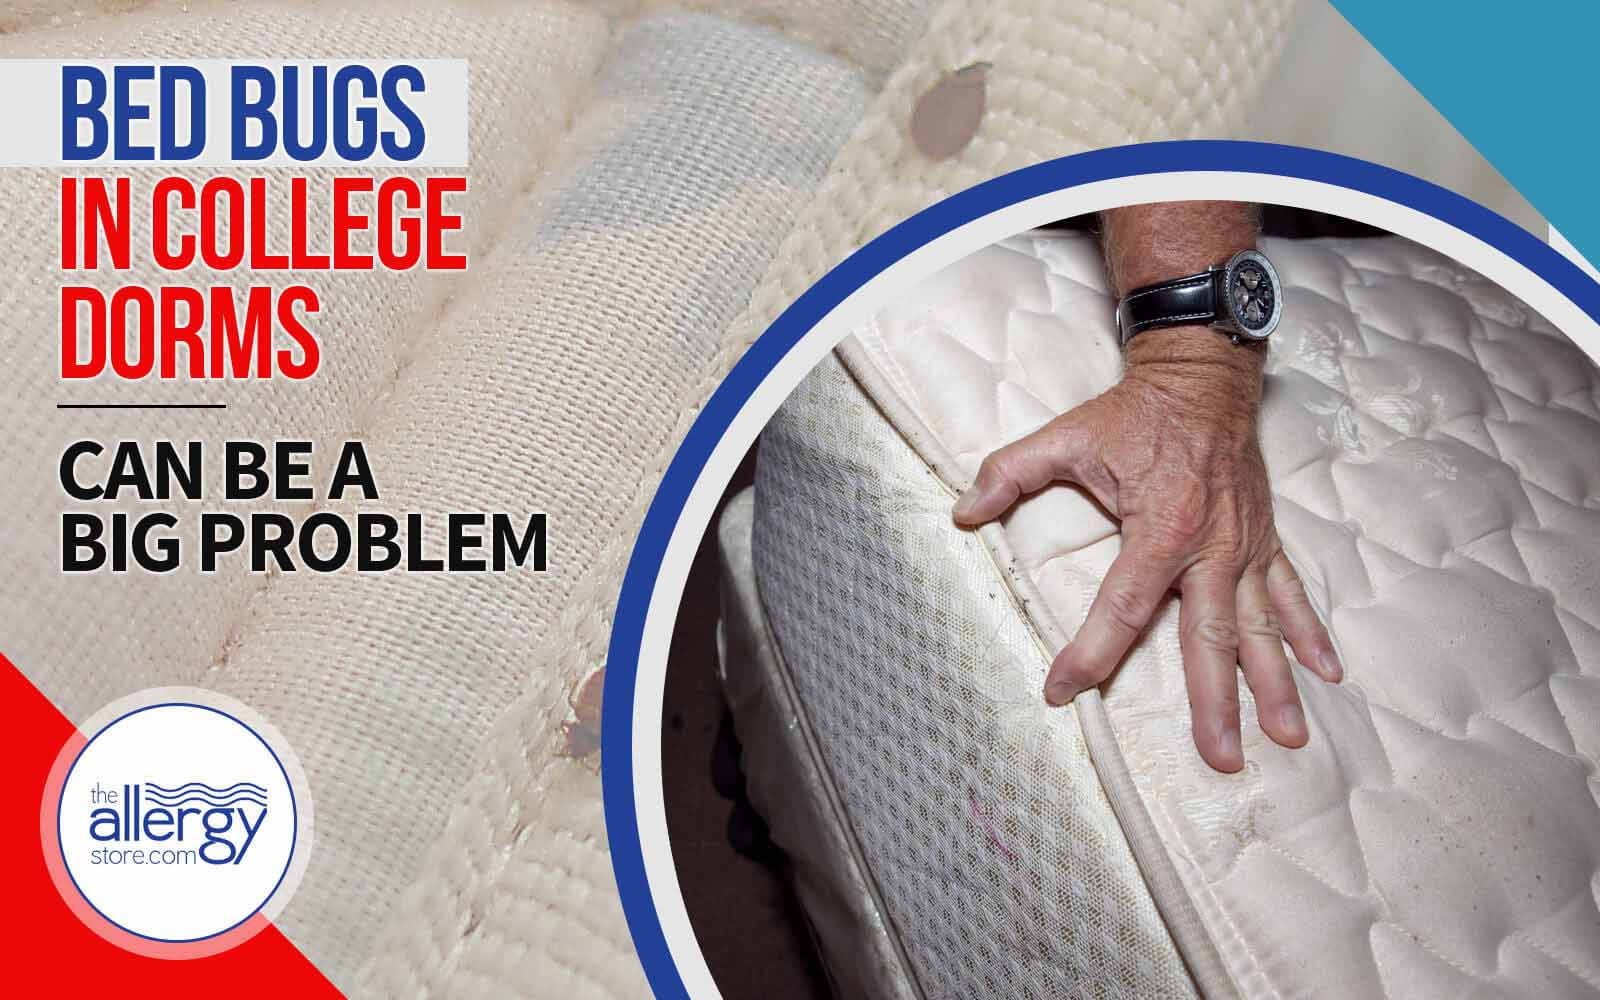 Bed Bugs in College Dorms Can Be a Big Problem